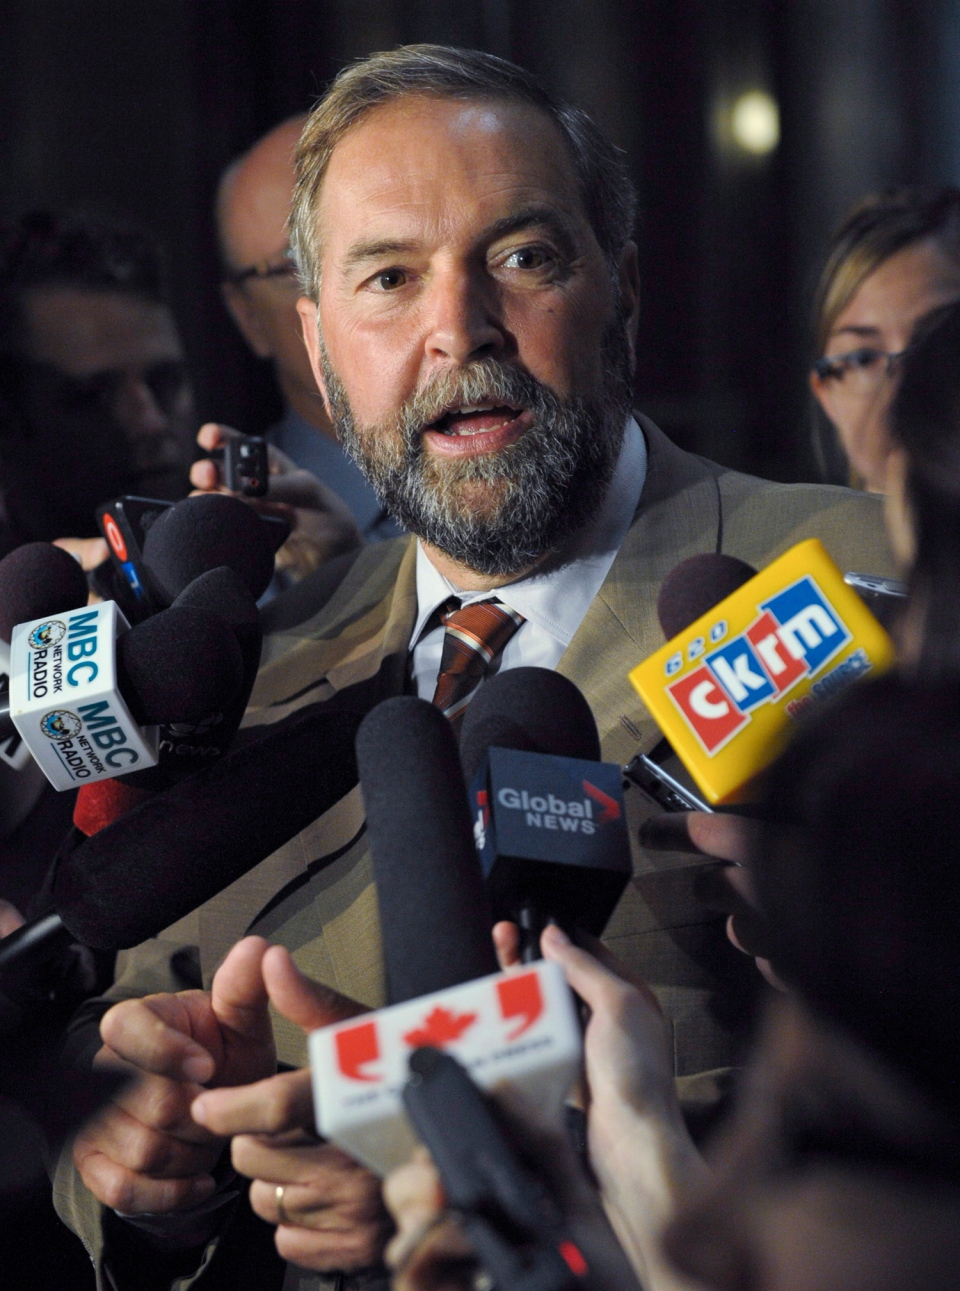 NDP Leader Tom Mulcair speaks to reporters in the rotunda of the Saskatchewan Legislative Building on Monday, Sept. 9, 2013 in Regina. (Michael Bell /  THE CANADIAN PRESS)